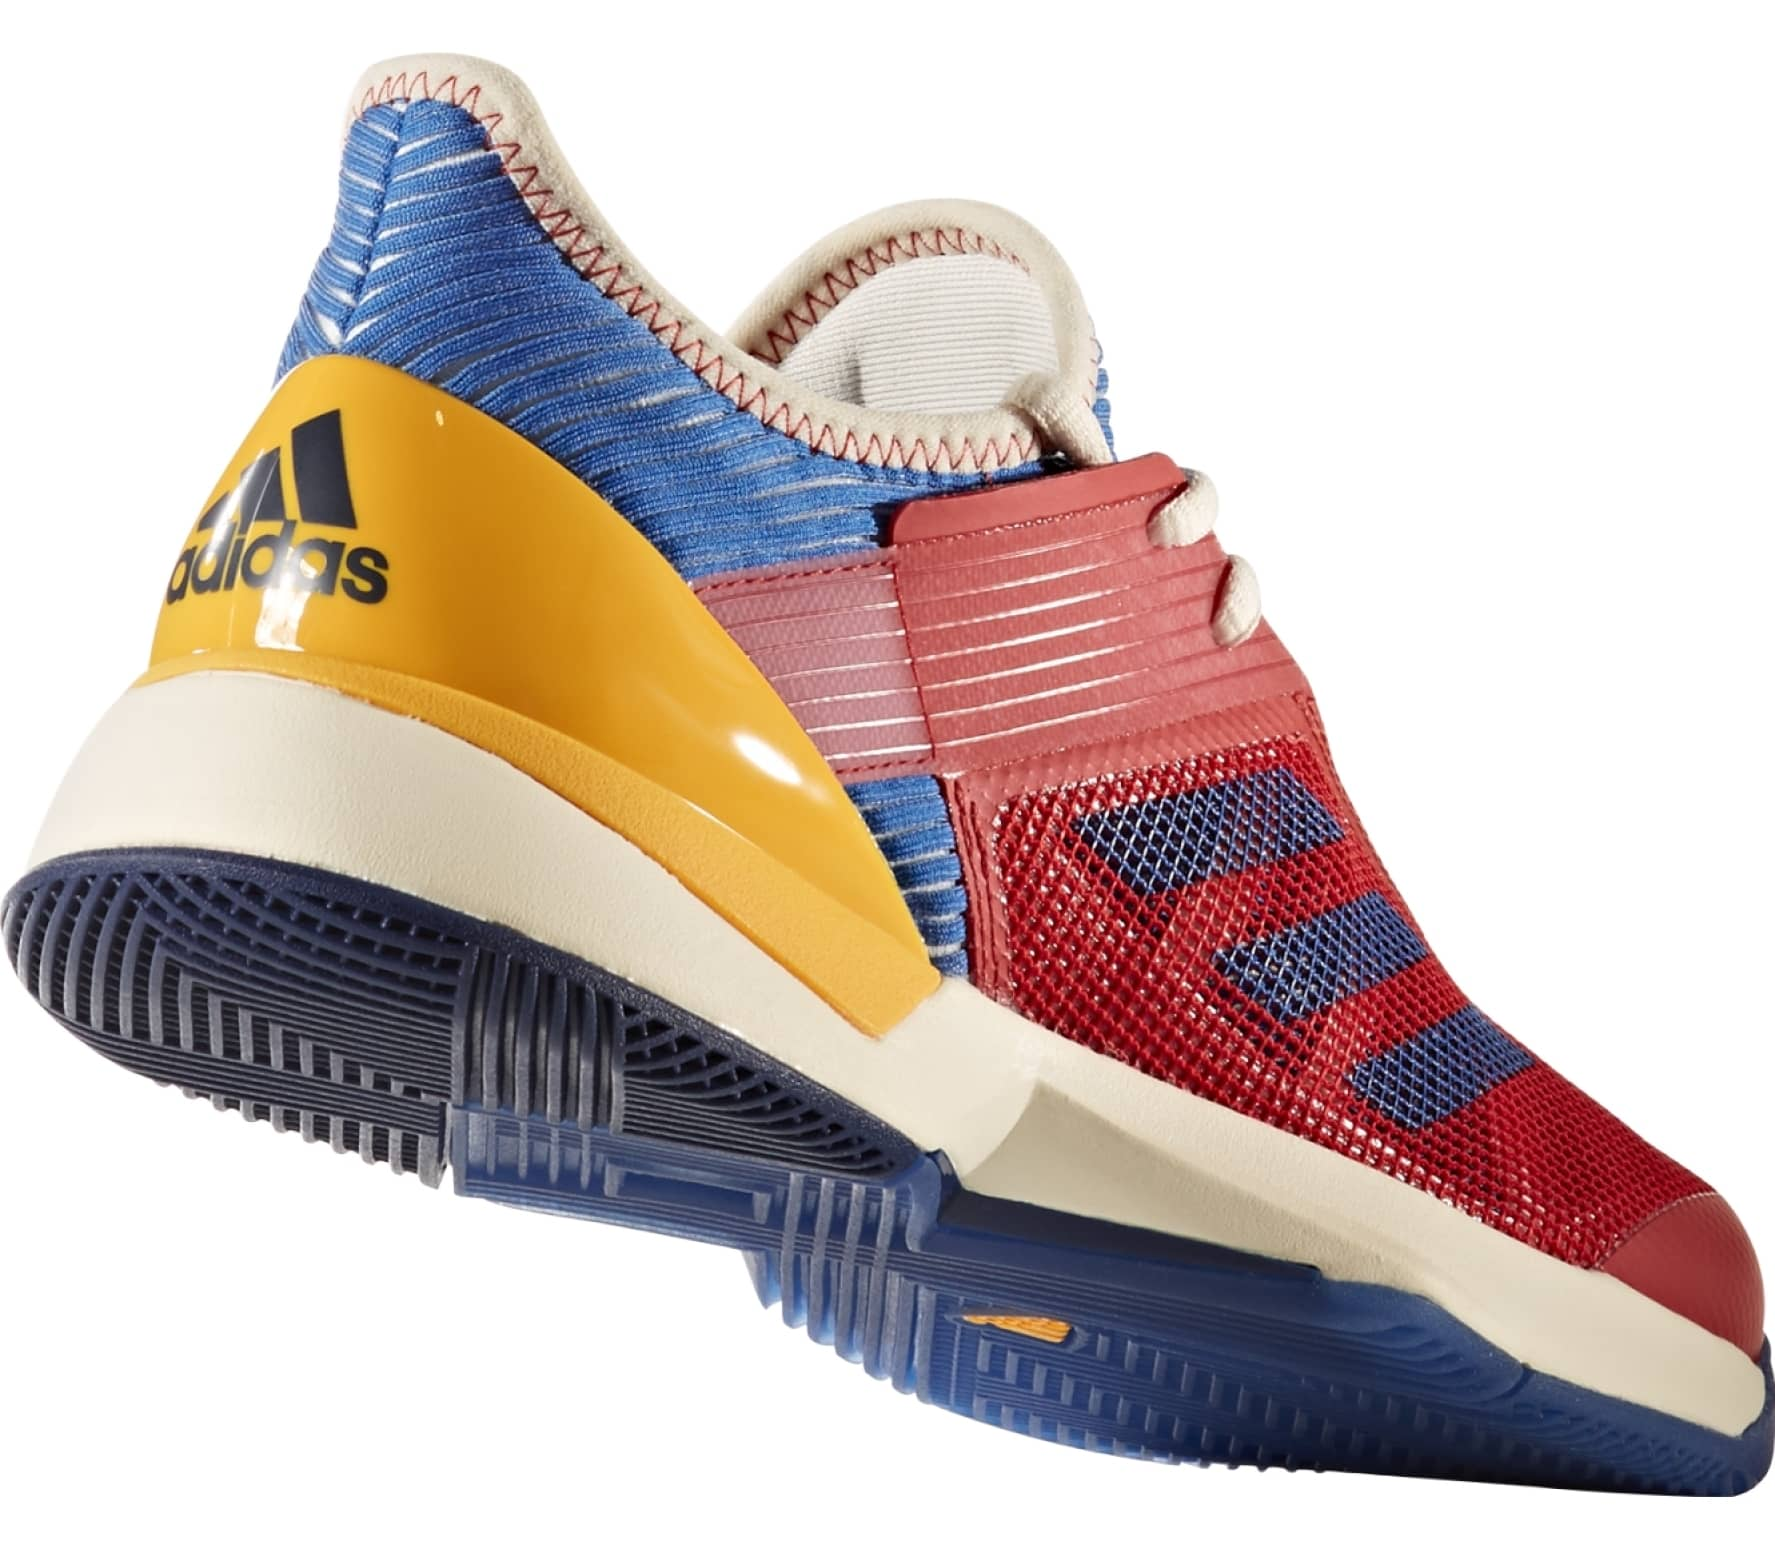 new products d73ff 85814 Adidas - Adizero Ubersonic 3 Pharrell Williams Mujer Zapato de tenis  (blancoazul)